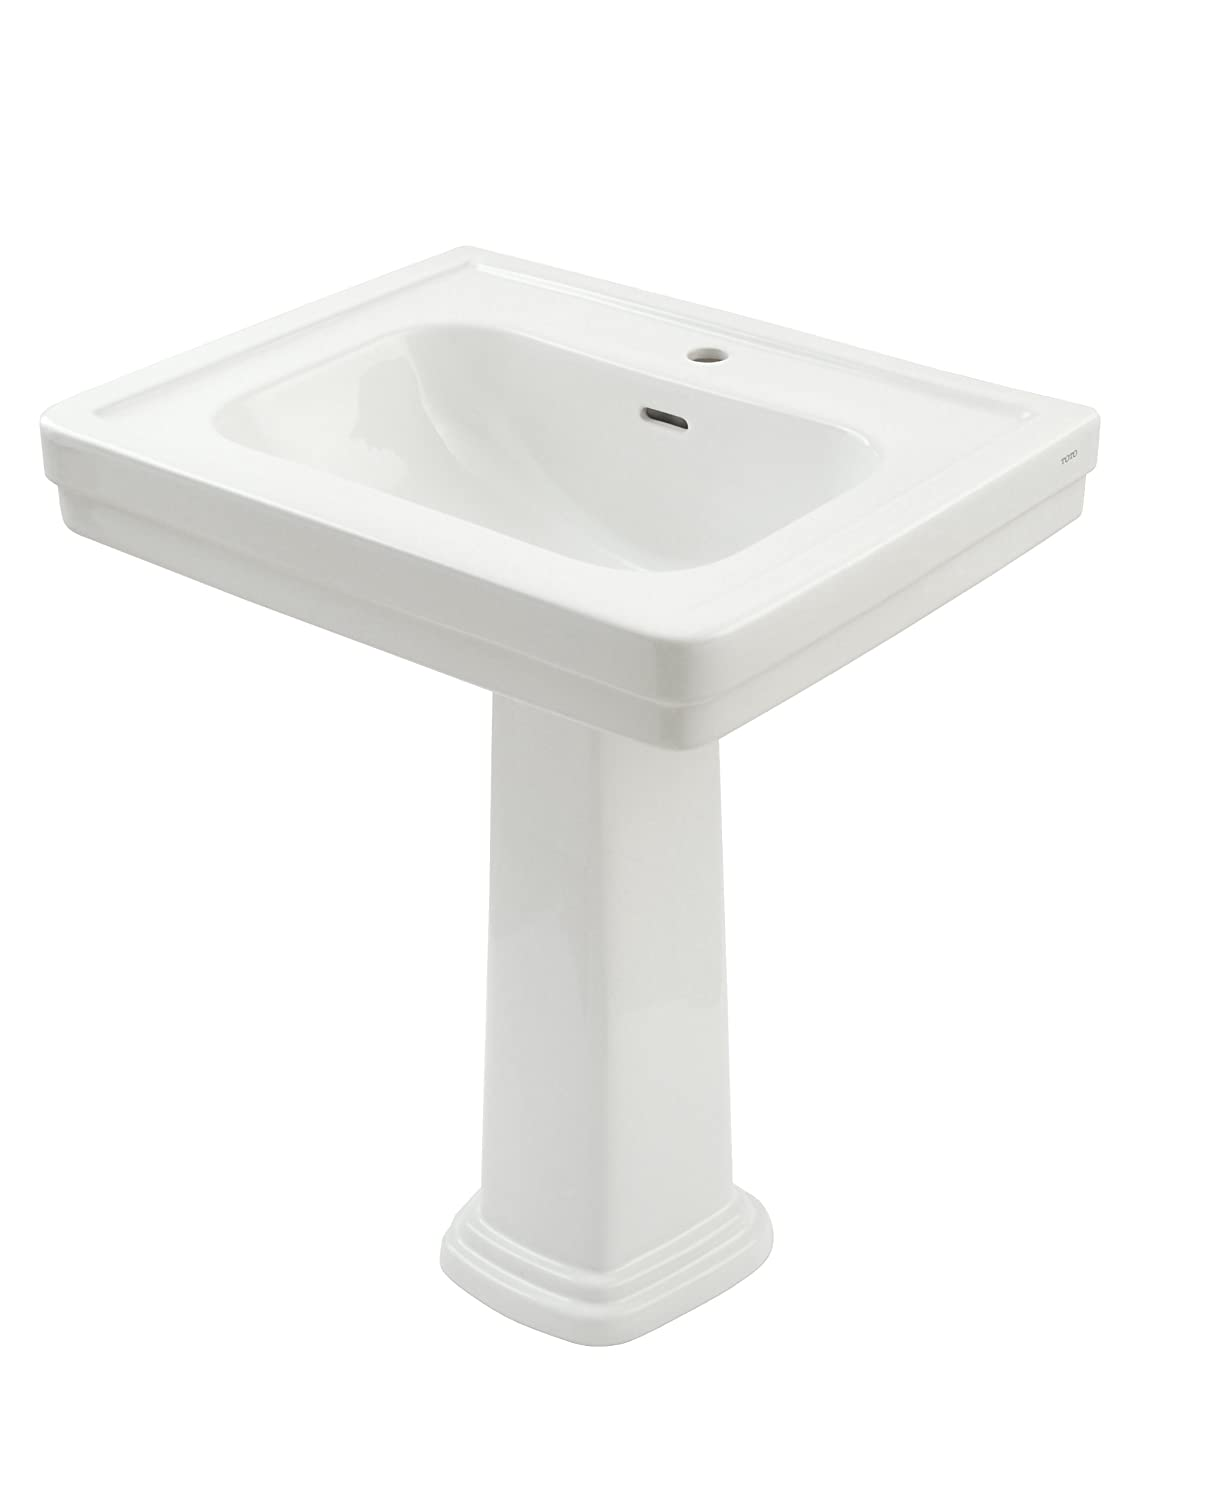 TOTO LPT530.8N#01 Promenade Lavatory And Pedestal With 8 Inch Centers,  Cotton White   Pedestal Sinks   Amazon.com